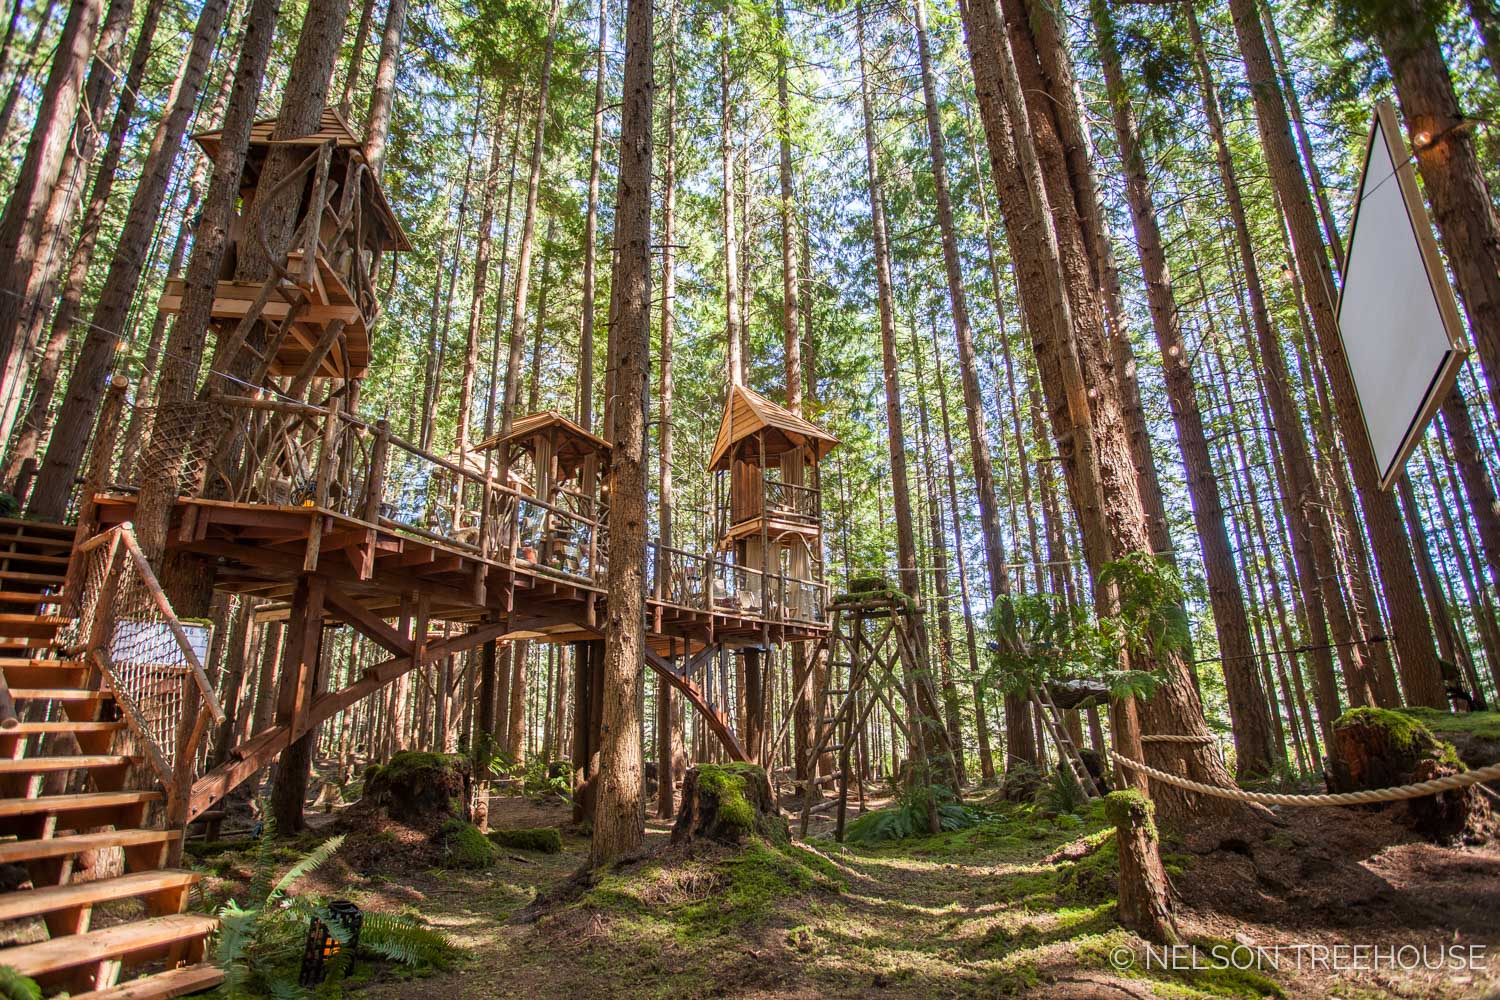 Treetop-Movie-Theater-2018-Nelson-Treehouse-116.jpg